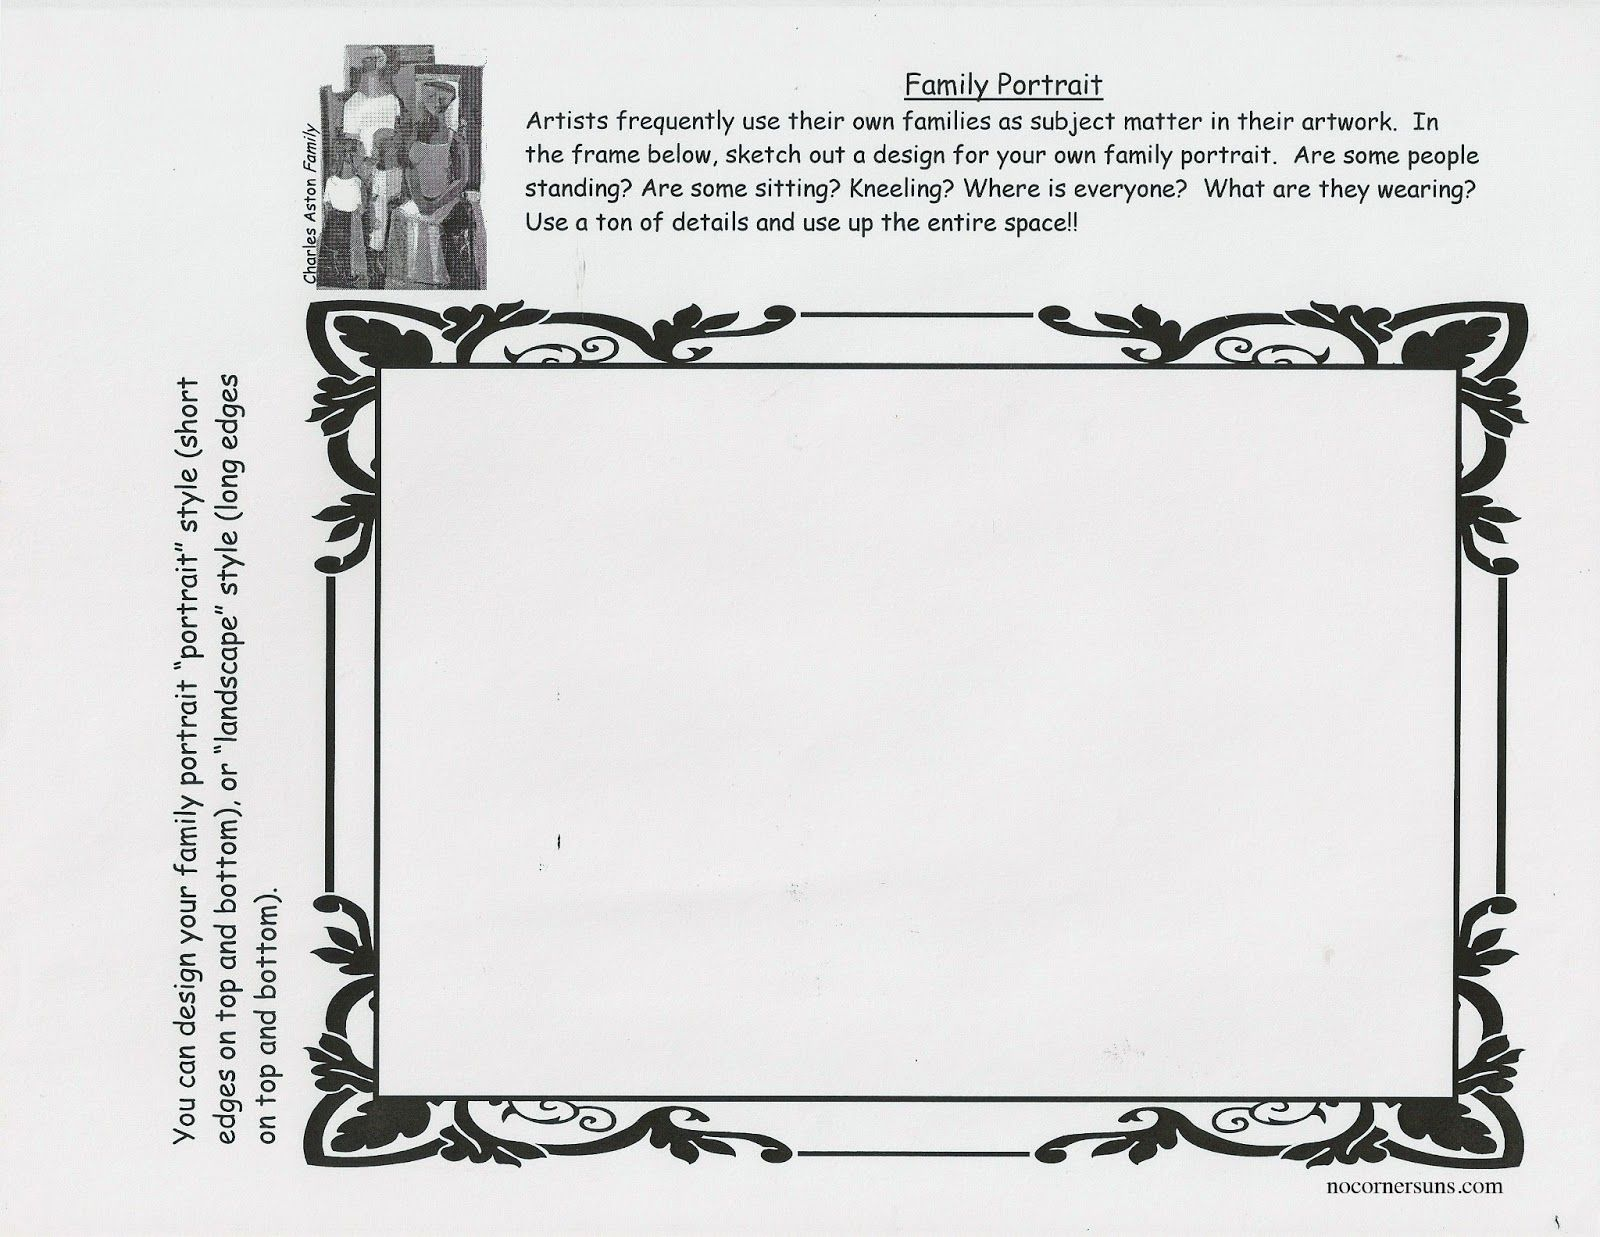 small resolution of No Corner Suns: Family Portrait Worksheet and Sculpture Handout   Art  worksheets